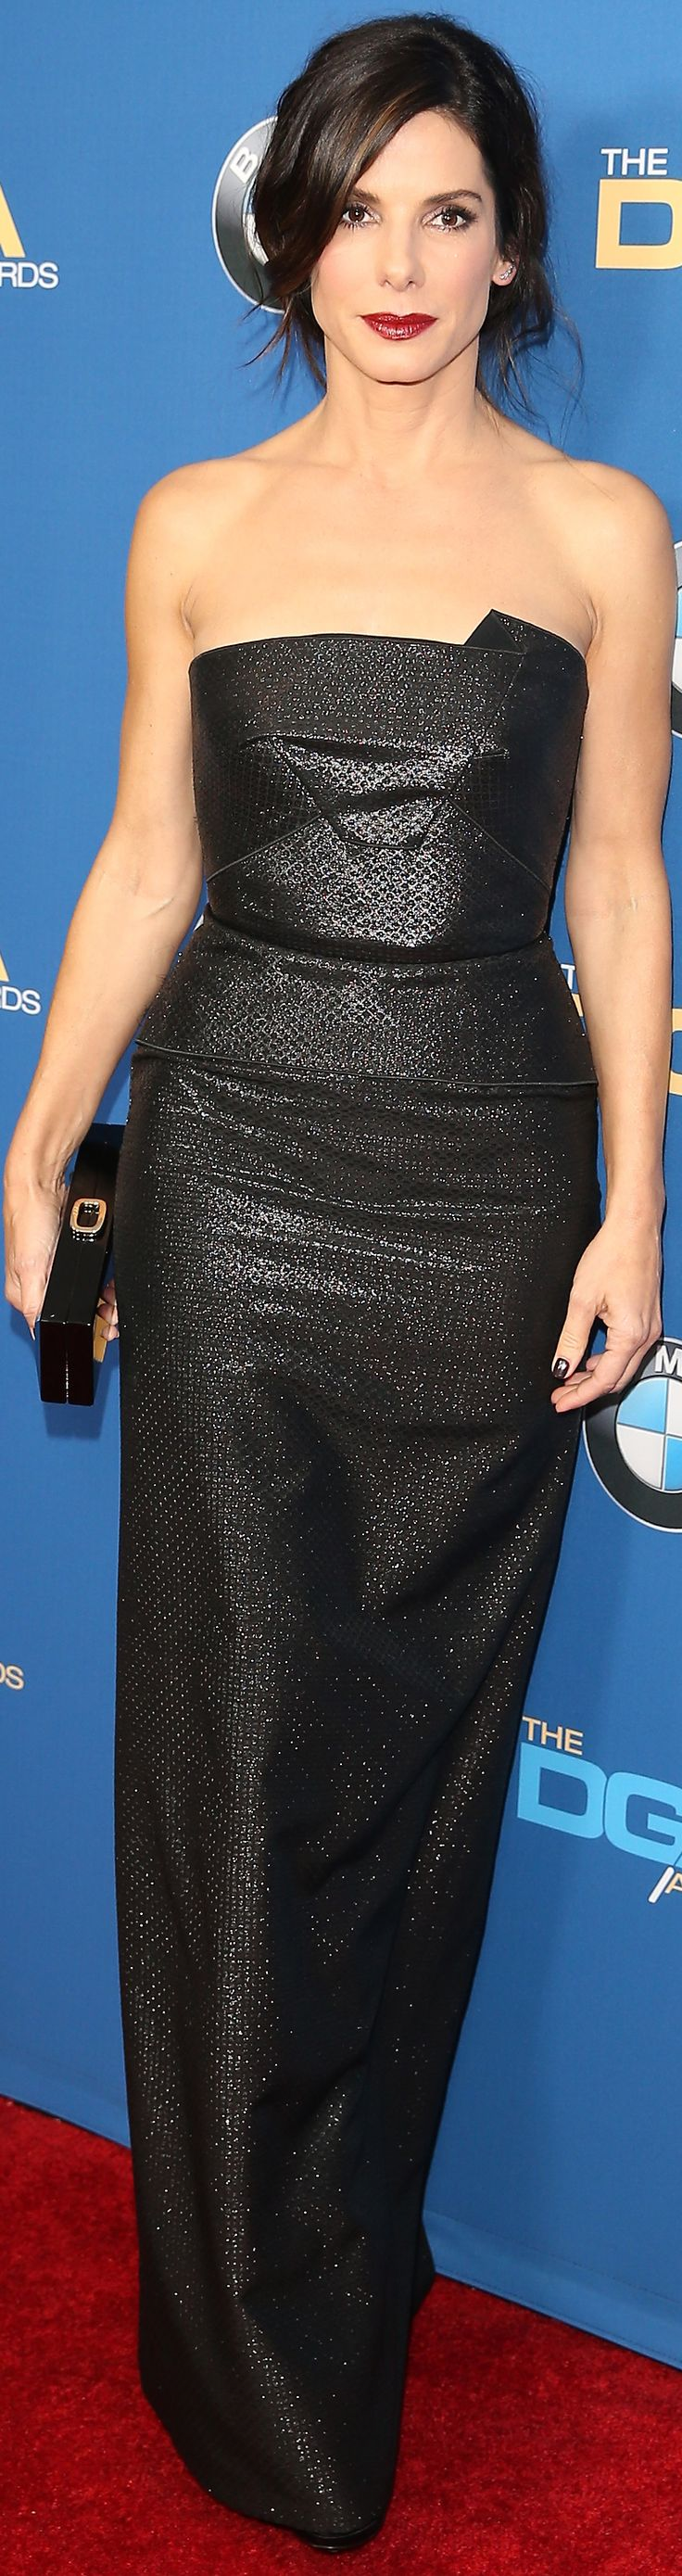 Sandra Bullock wore a black Roland Mouret dress to the 2014 Directors Guild Awards.